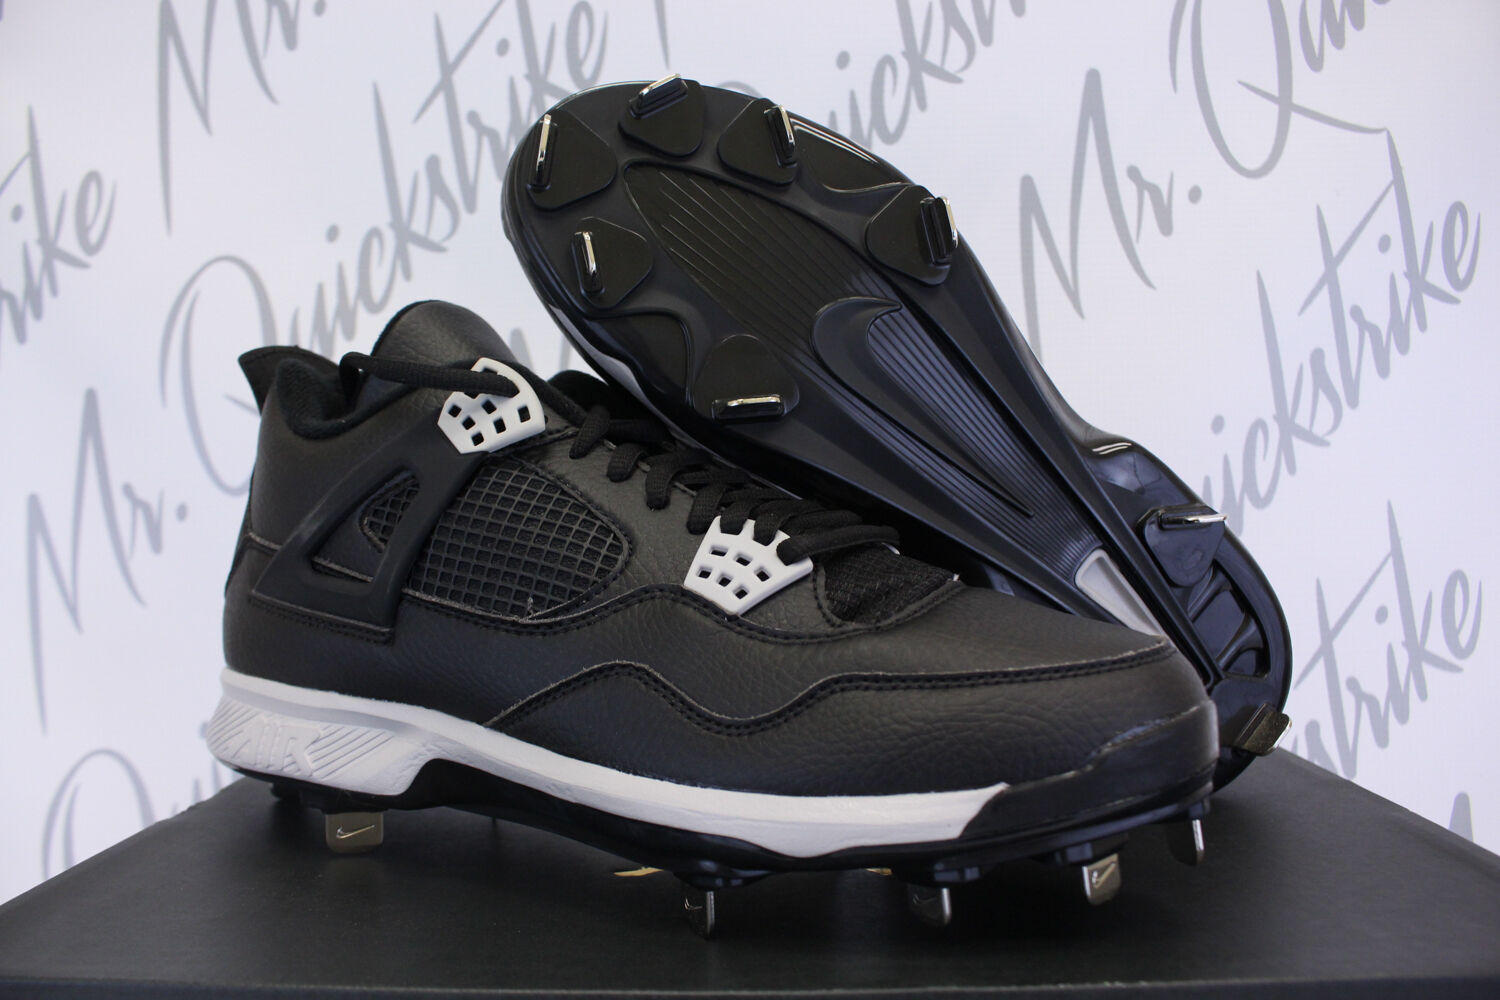 AIR JORDAN IV RETRO 4 CLEATS SZ 8.5 schwarz TECH grau 807710 010